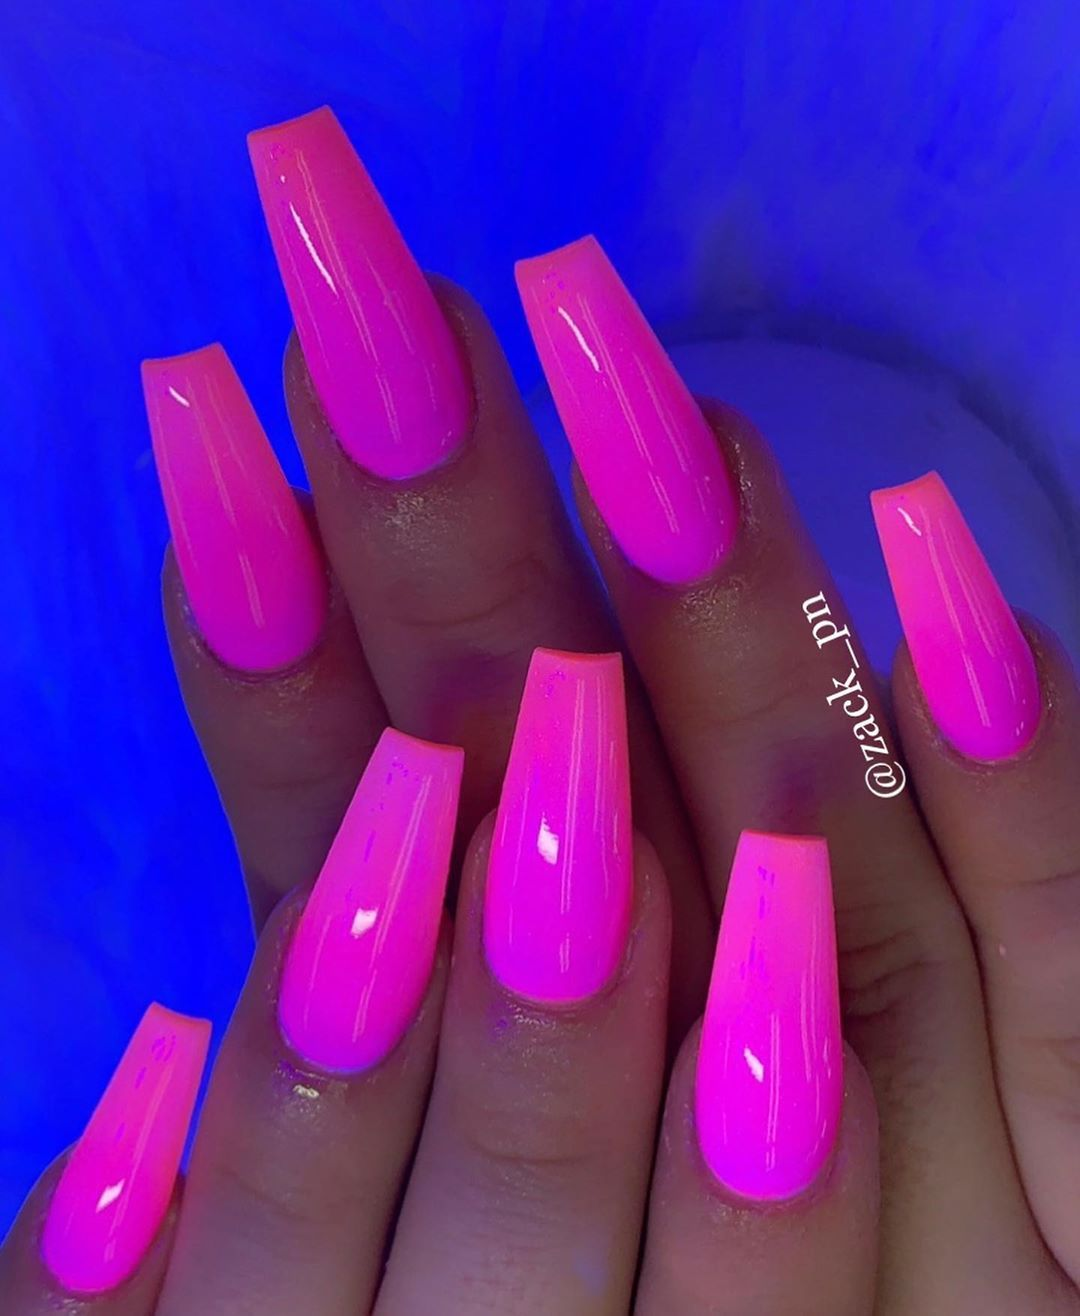 Love Summer Color Hot Pink Glow In The Dark Orange Ombre Swipe To See All The Picture Nailp Dark Pink Nails Summer Acrylic Nails Pink Acrylic Nails